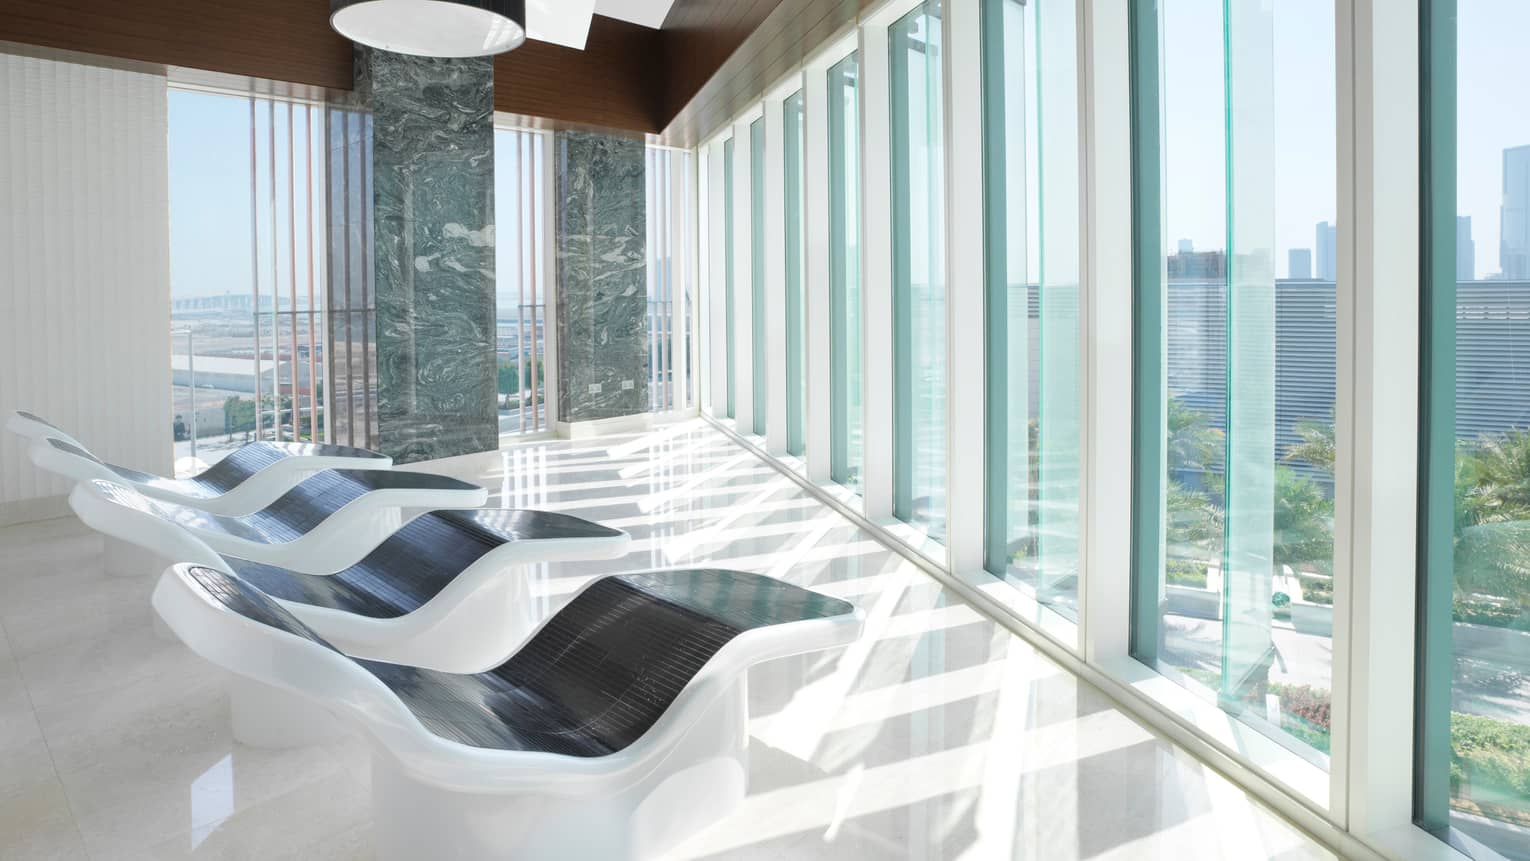 White-and-black recliners in front of floor-to-ceiling glass windows in bright relaxation room